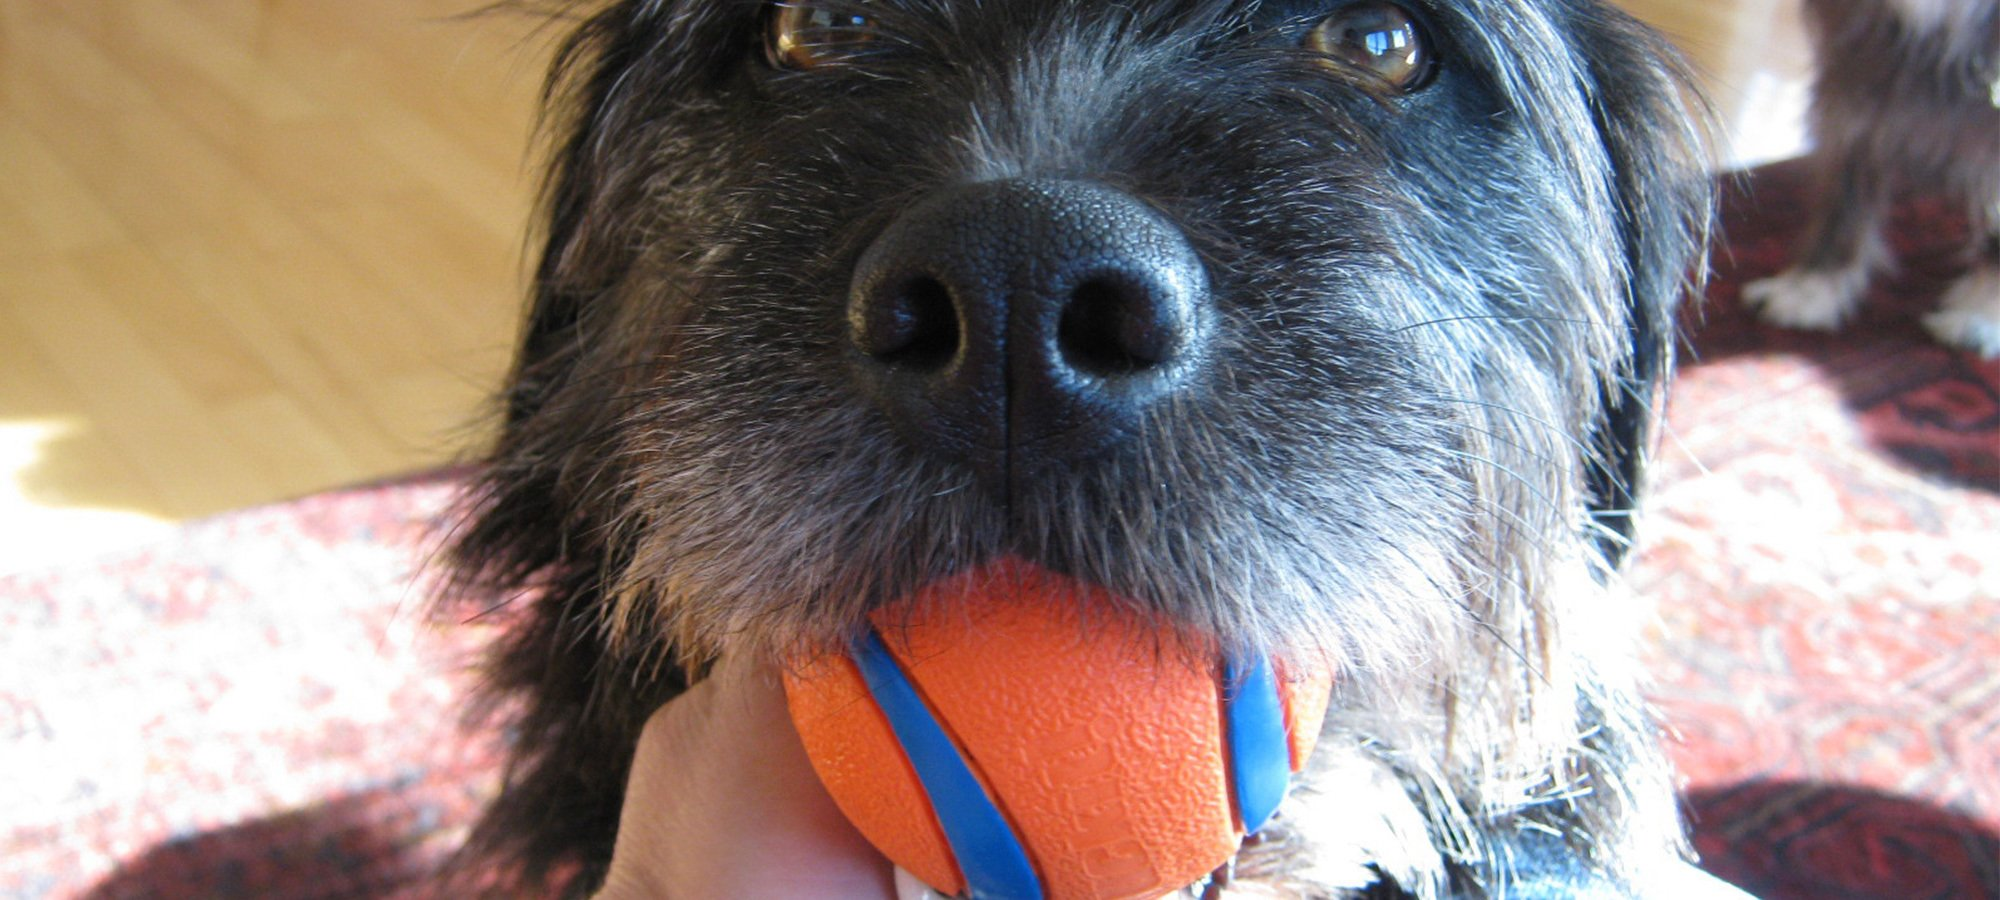 Dog with ball in its mouth